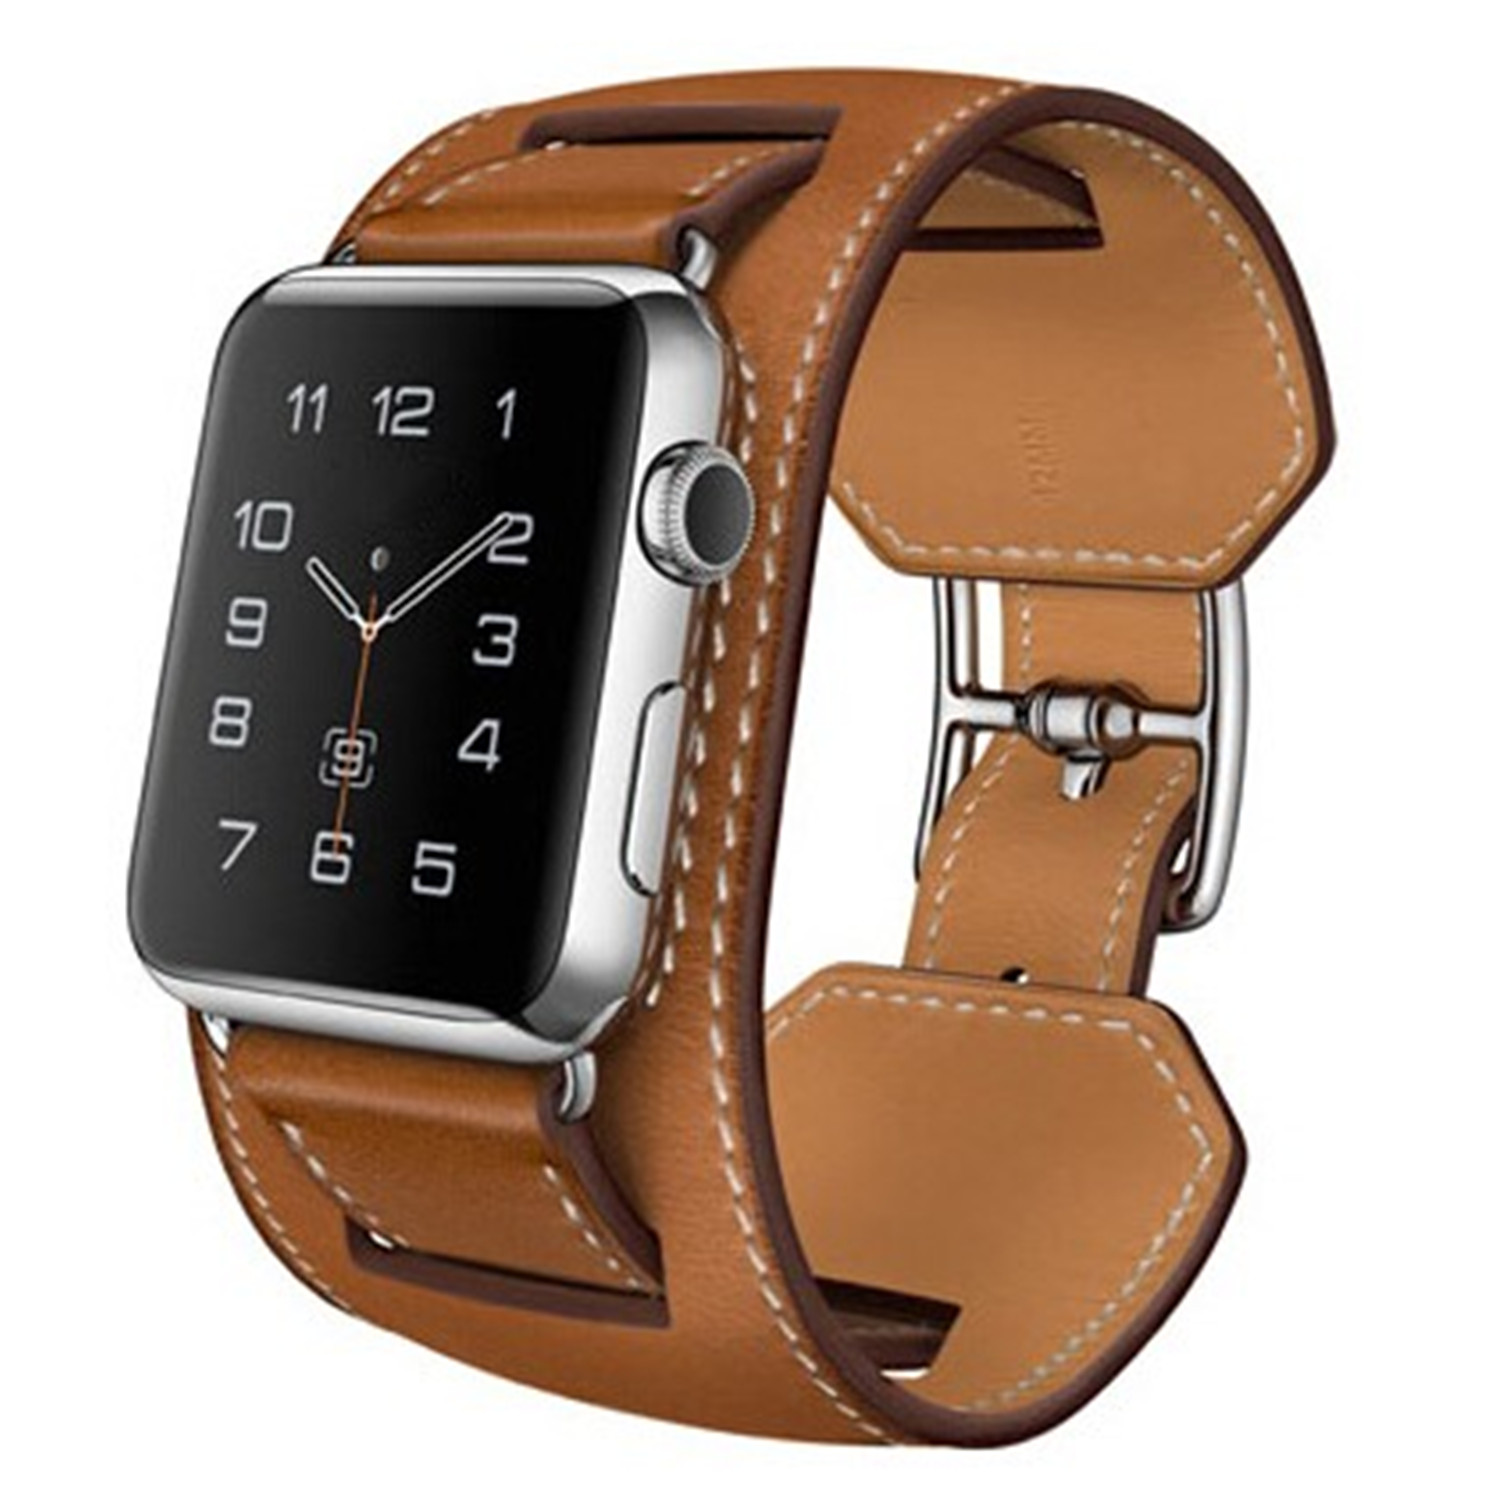 Ремешок hermes для apple watch цена